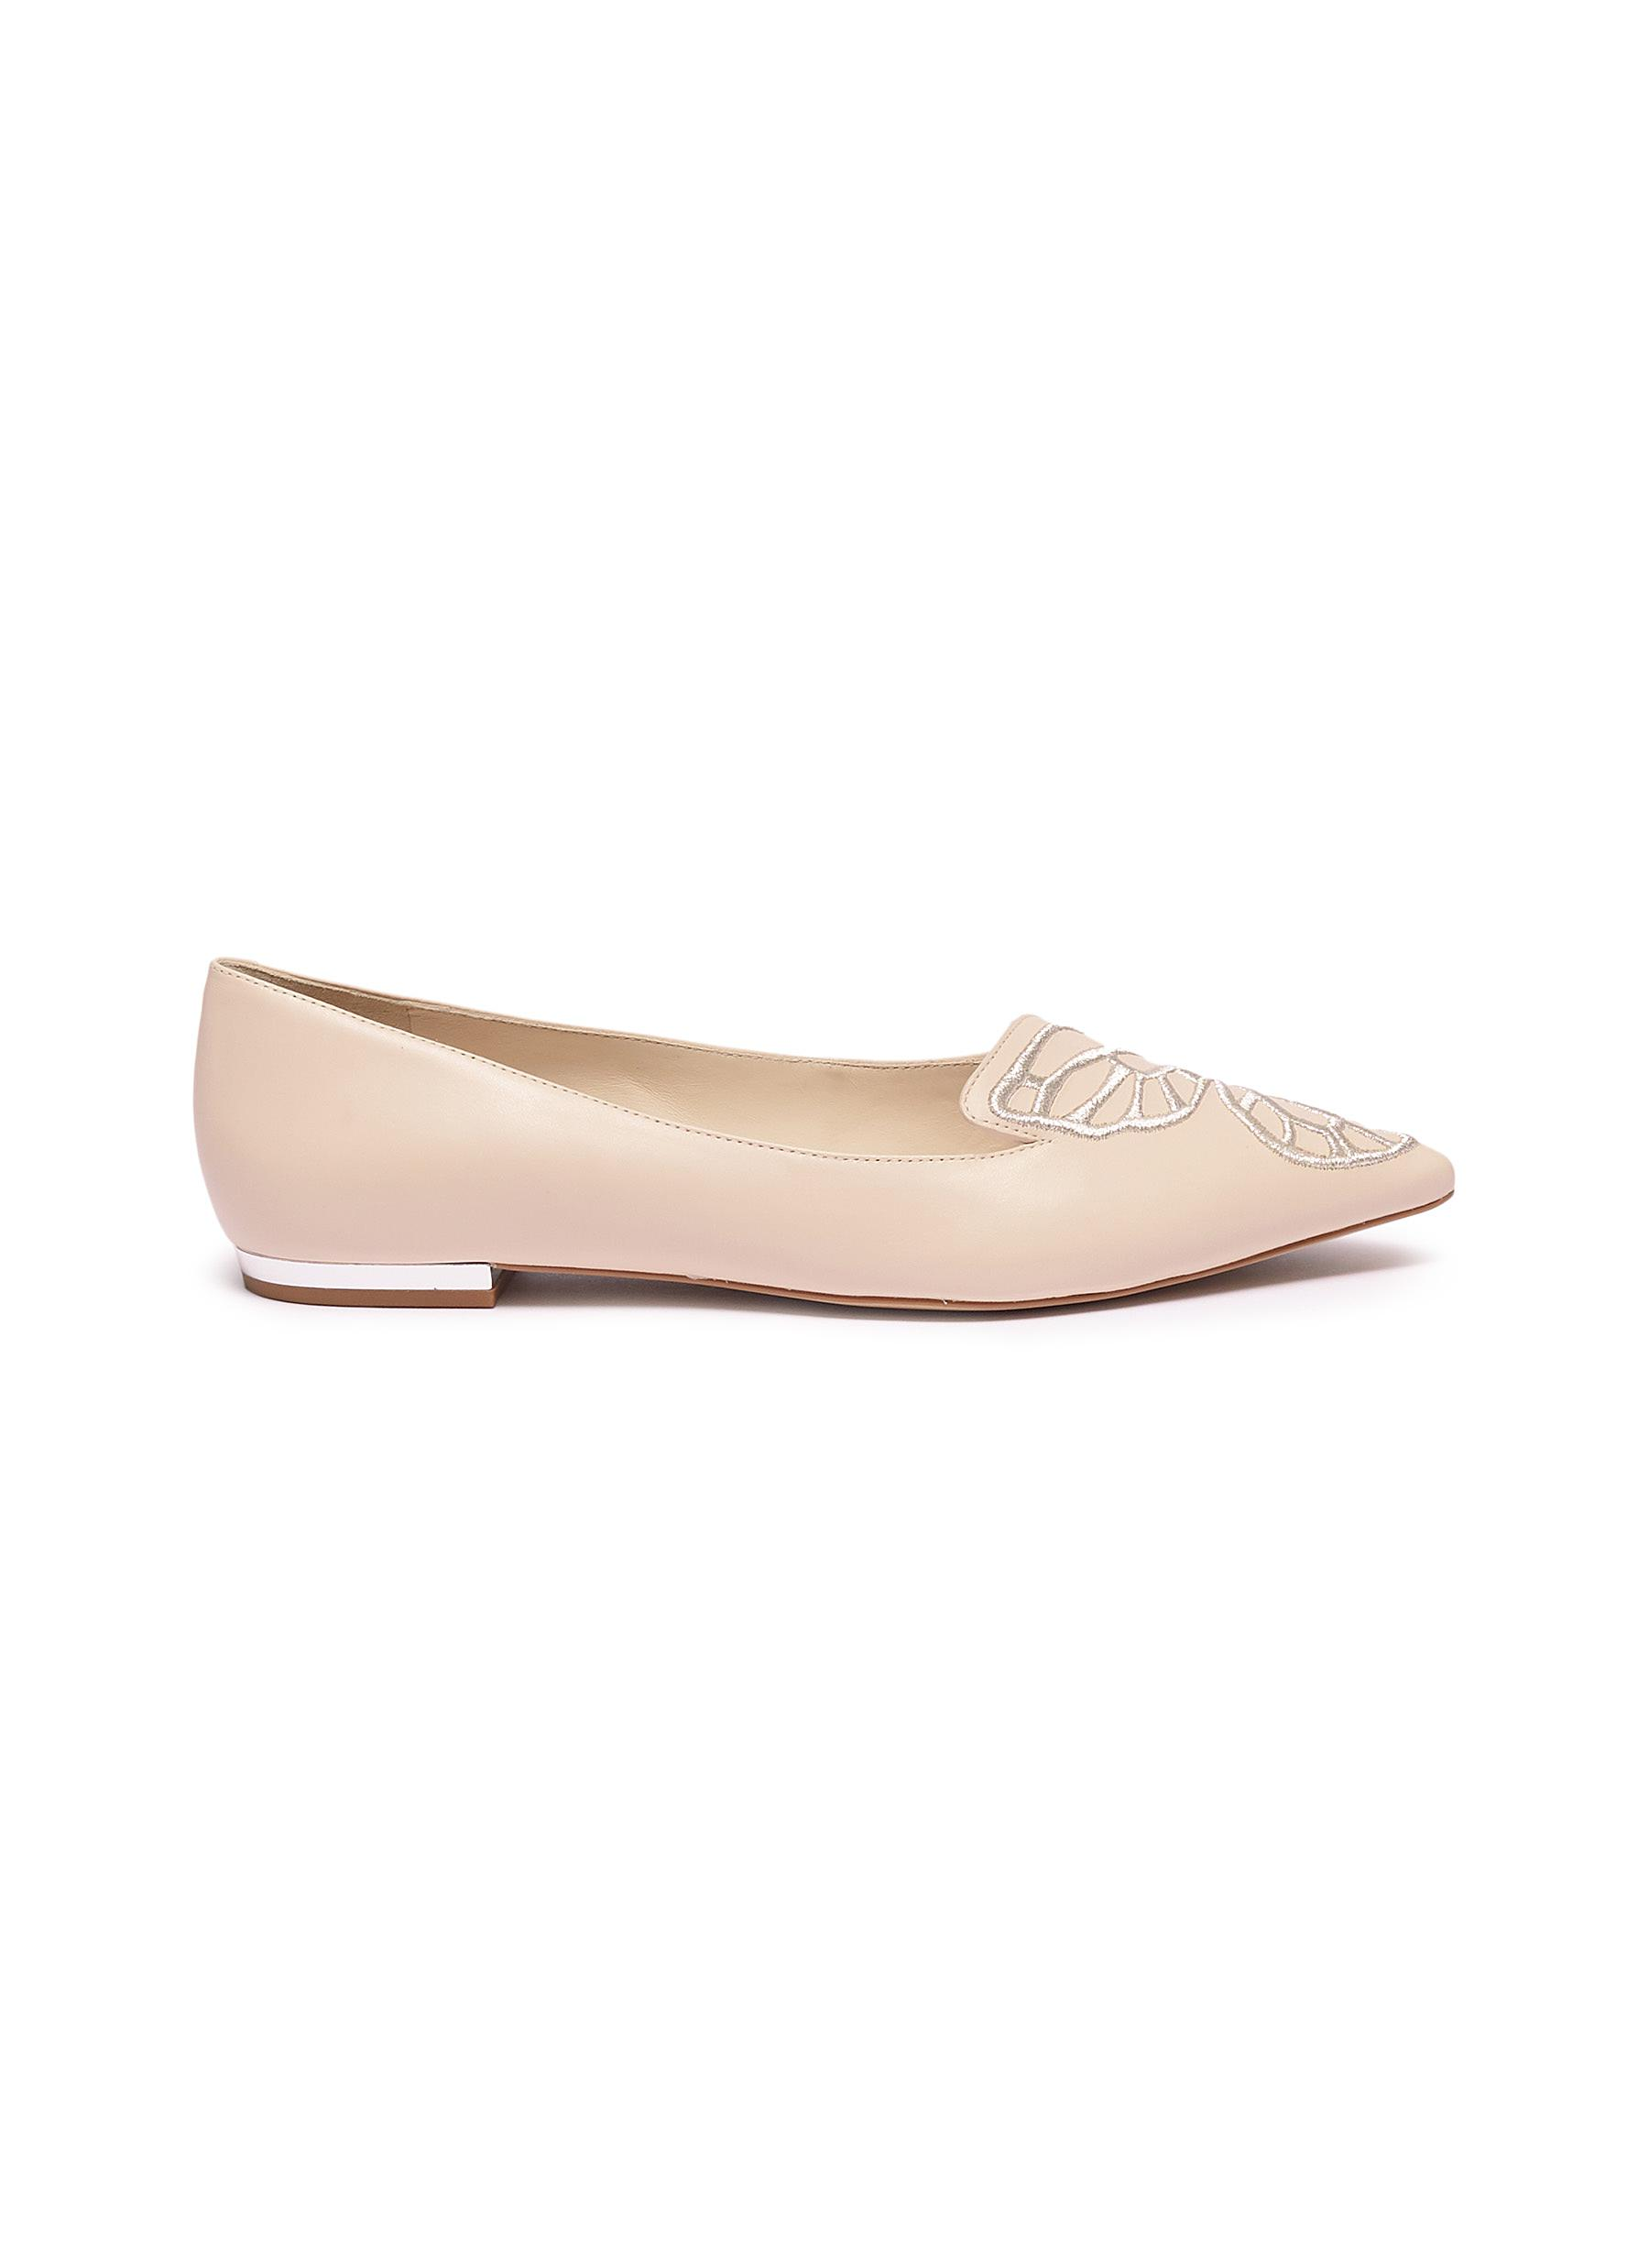 Bibi Butterfly wing embroidered leather flats by Sophia Webster